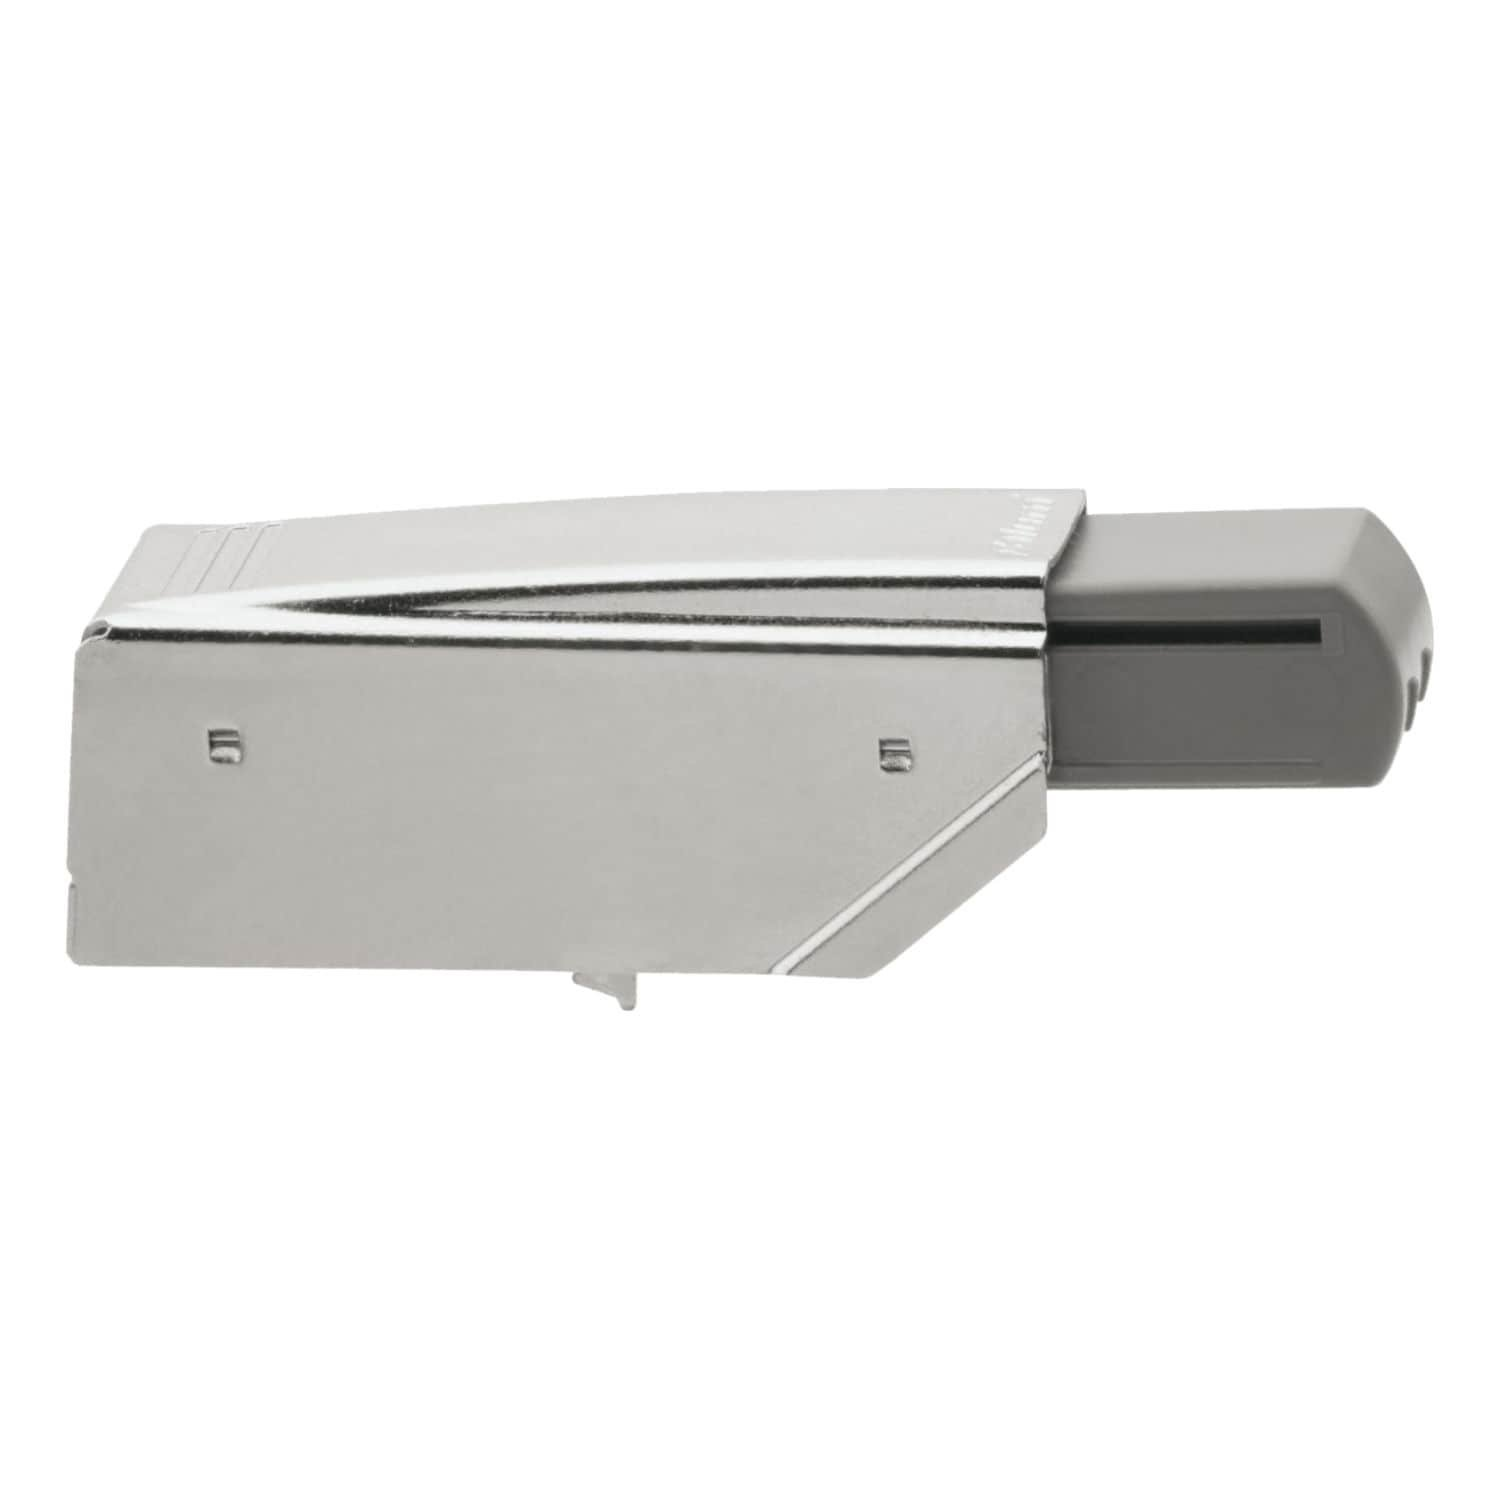 Blum otion Soft-close Add-on for Half-cranked Arm Clip-top Hinges (Case of 50)